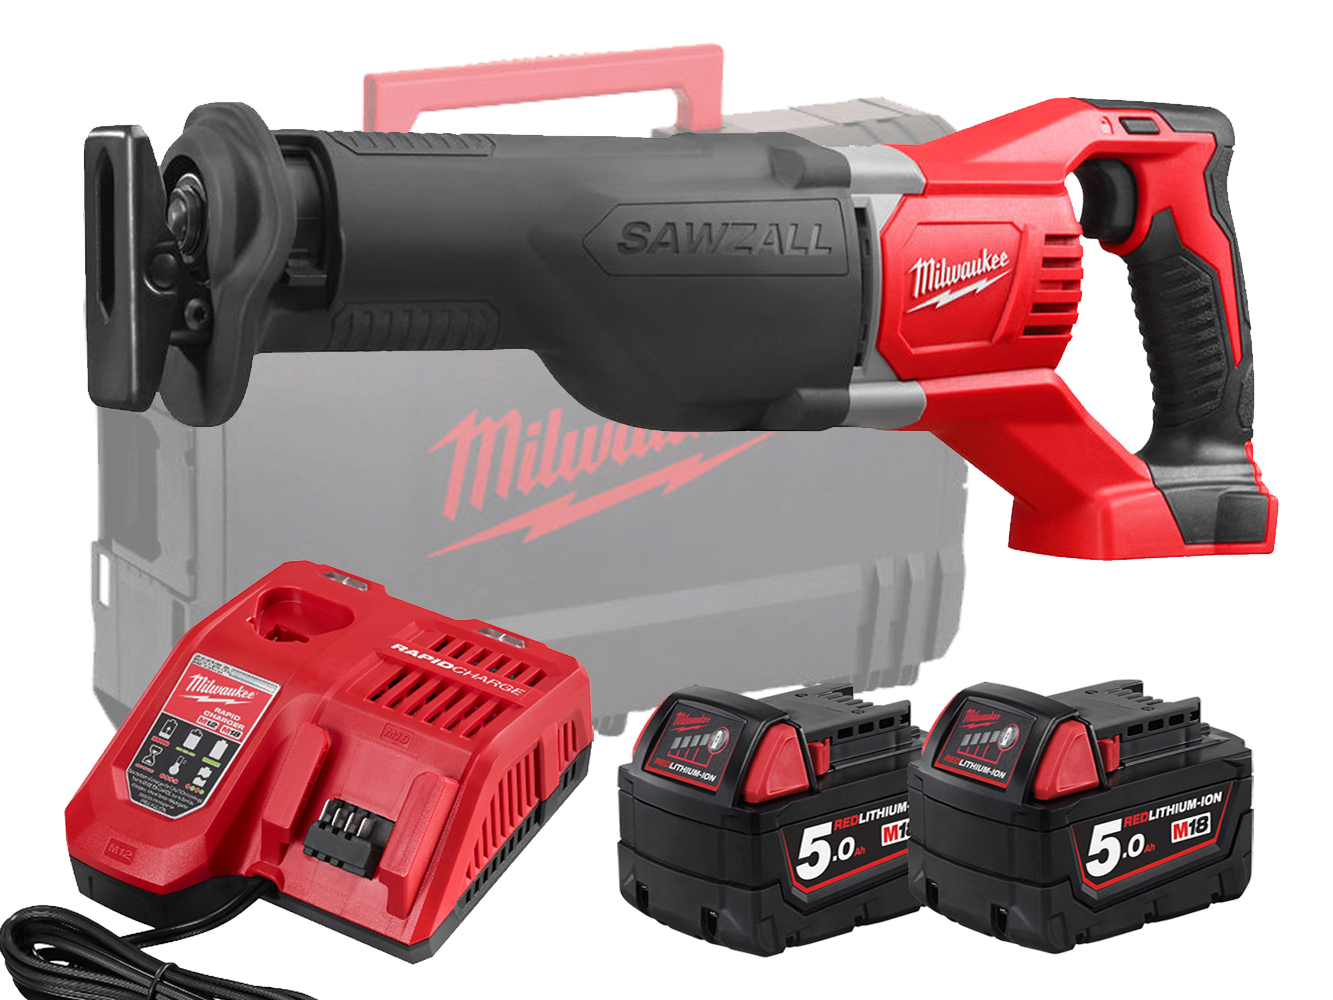 Milwaukee M18BSX 18V Brushed Sawzall (Reciprocating Saw) - 5.0ah Pack